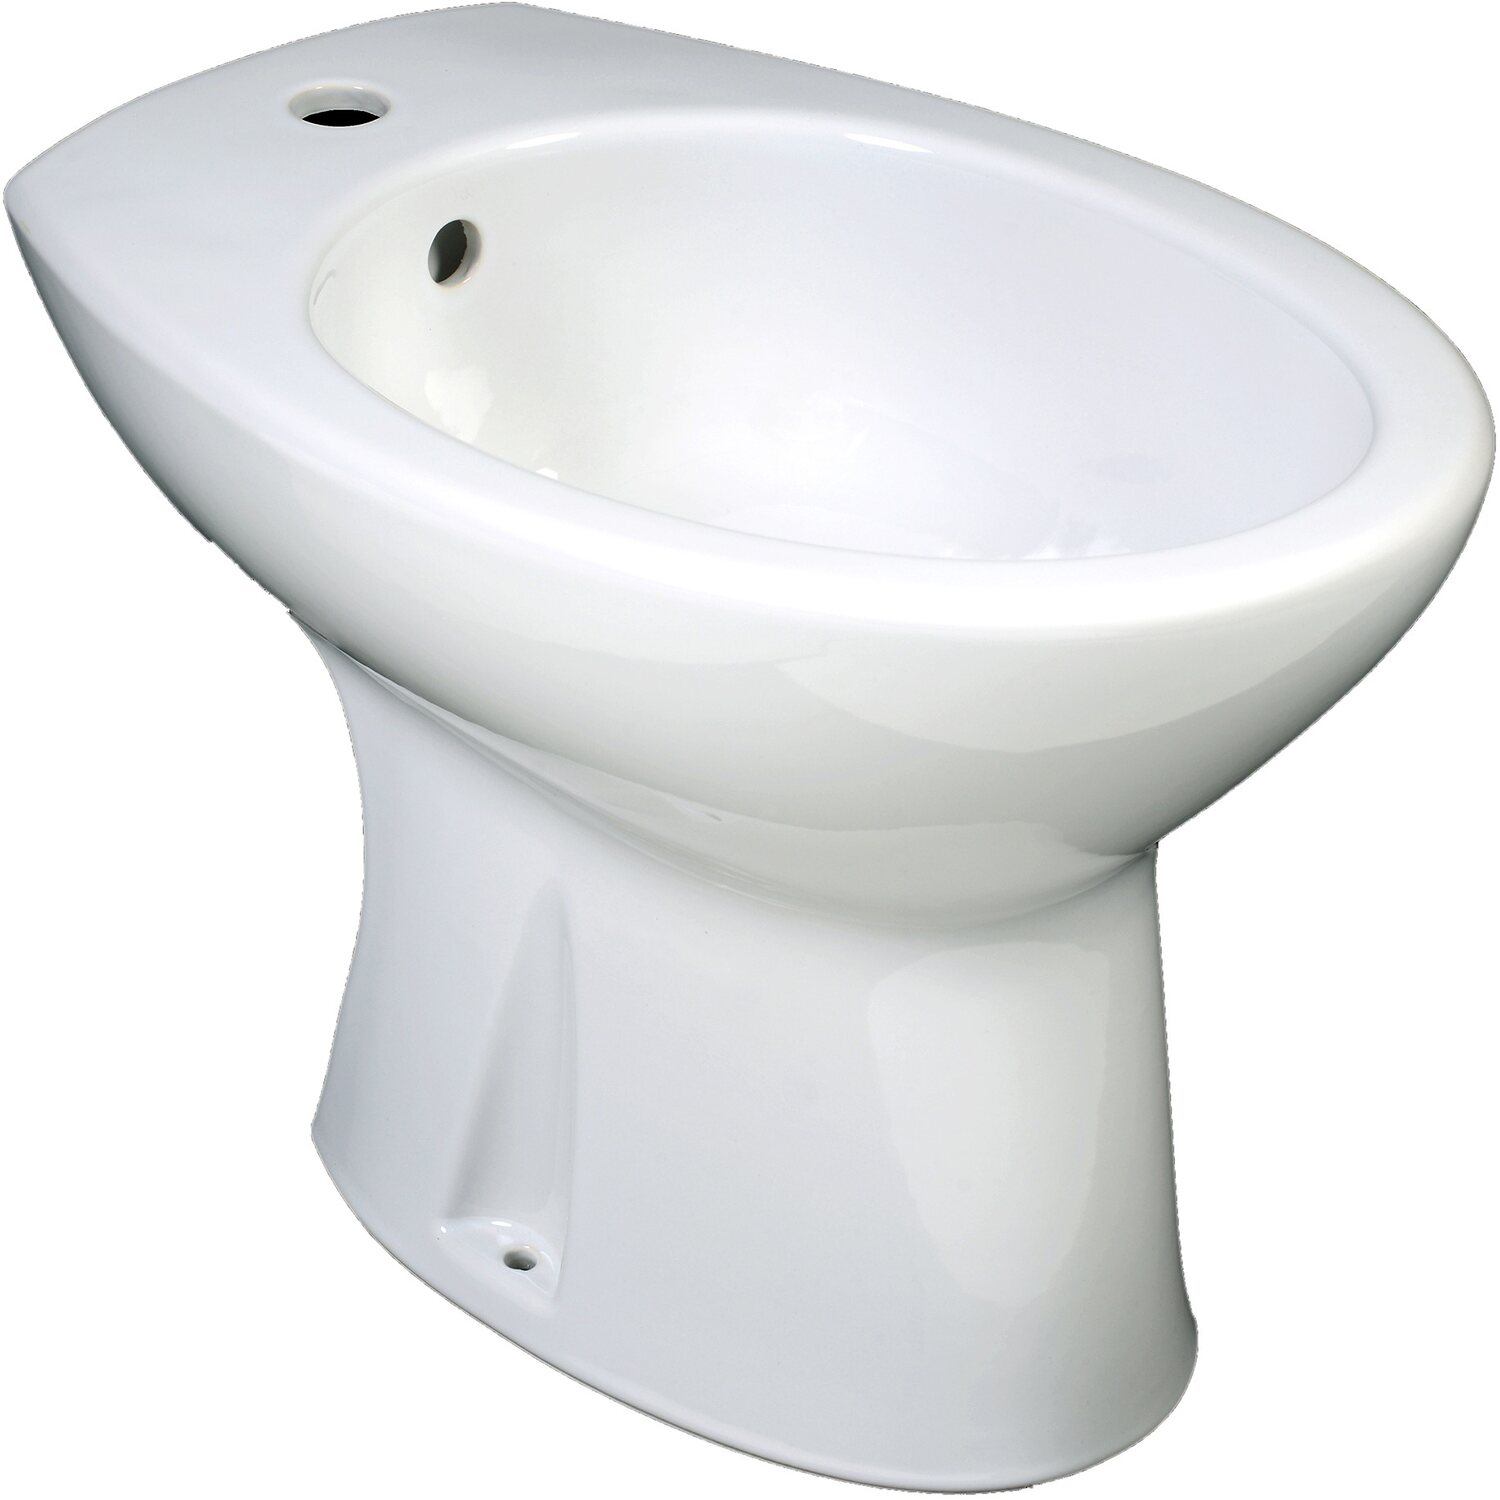 Water con bidet incorporato ideal standard con funzione for Copriwater obi